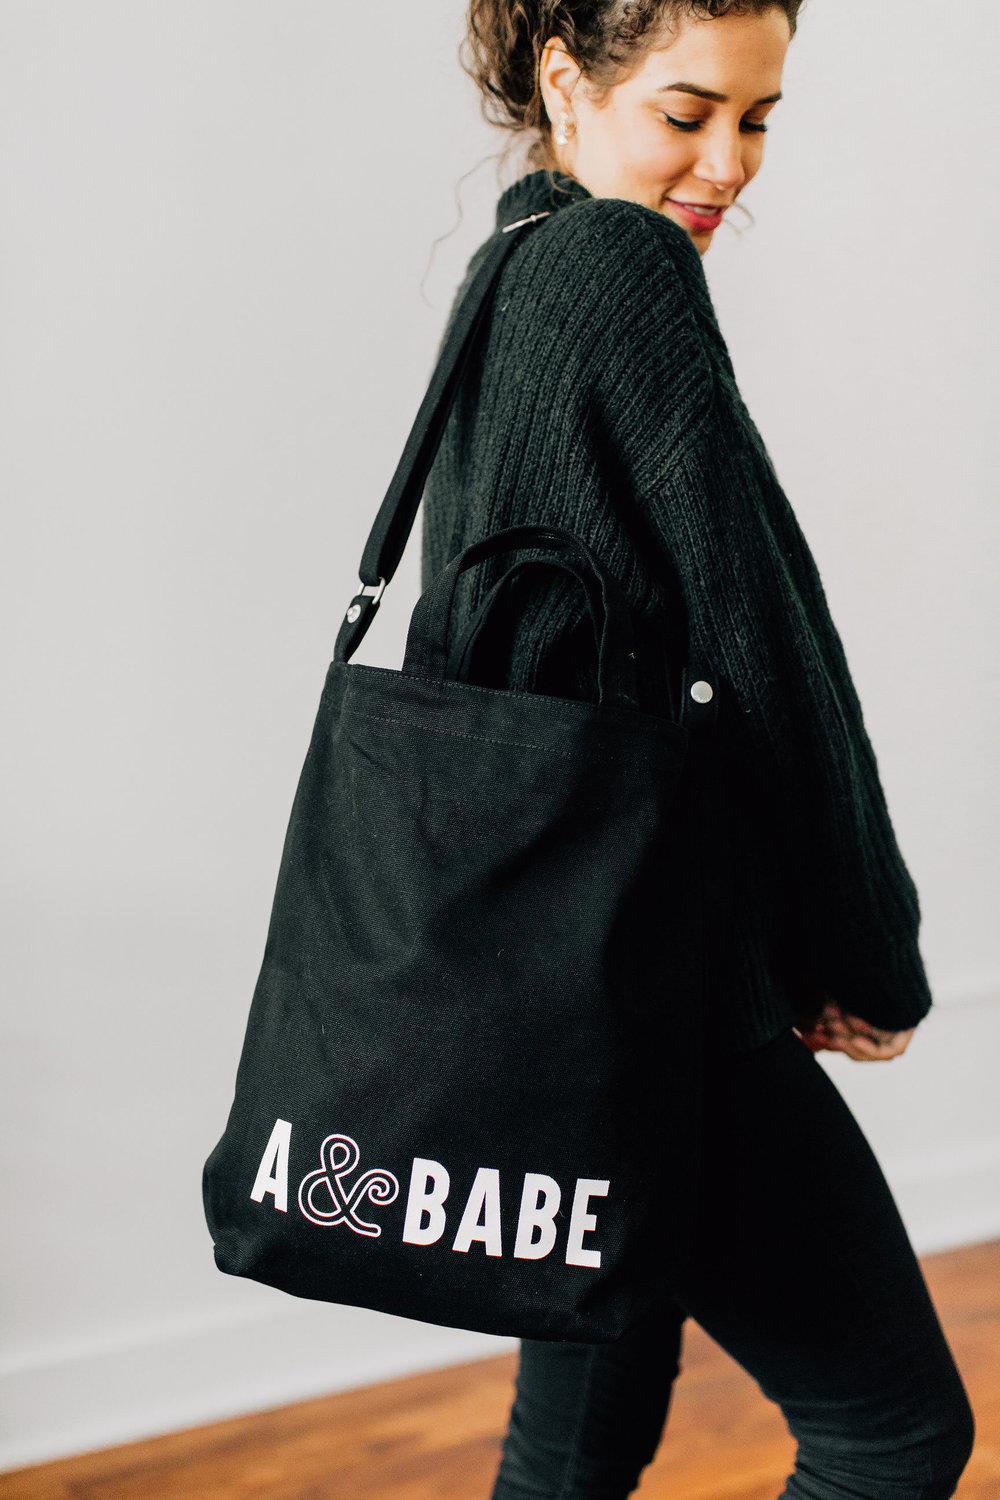 Meet the tote for all of your things. We didn't skimp on quality either so feel free to get pumped about this canvas tote situation.